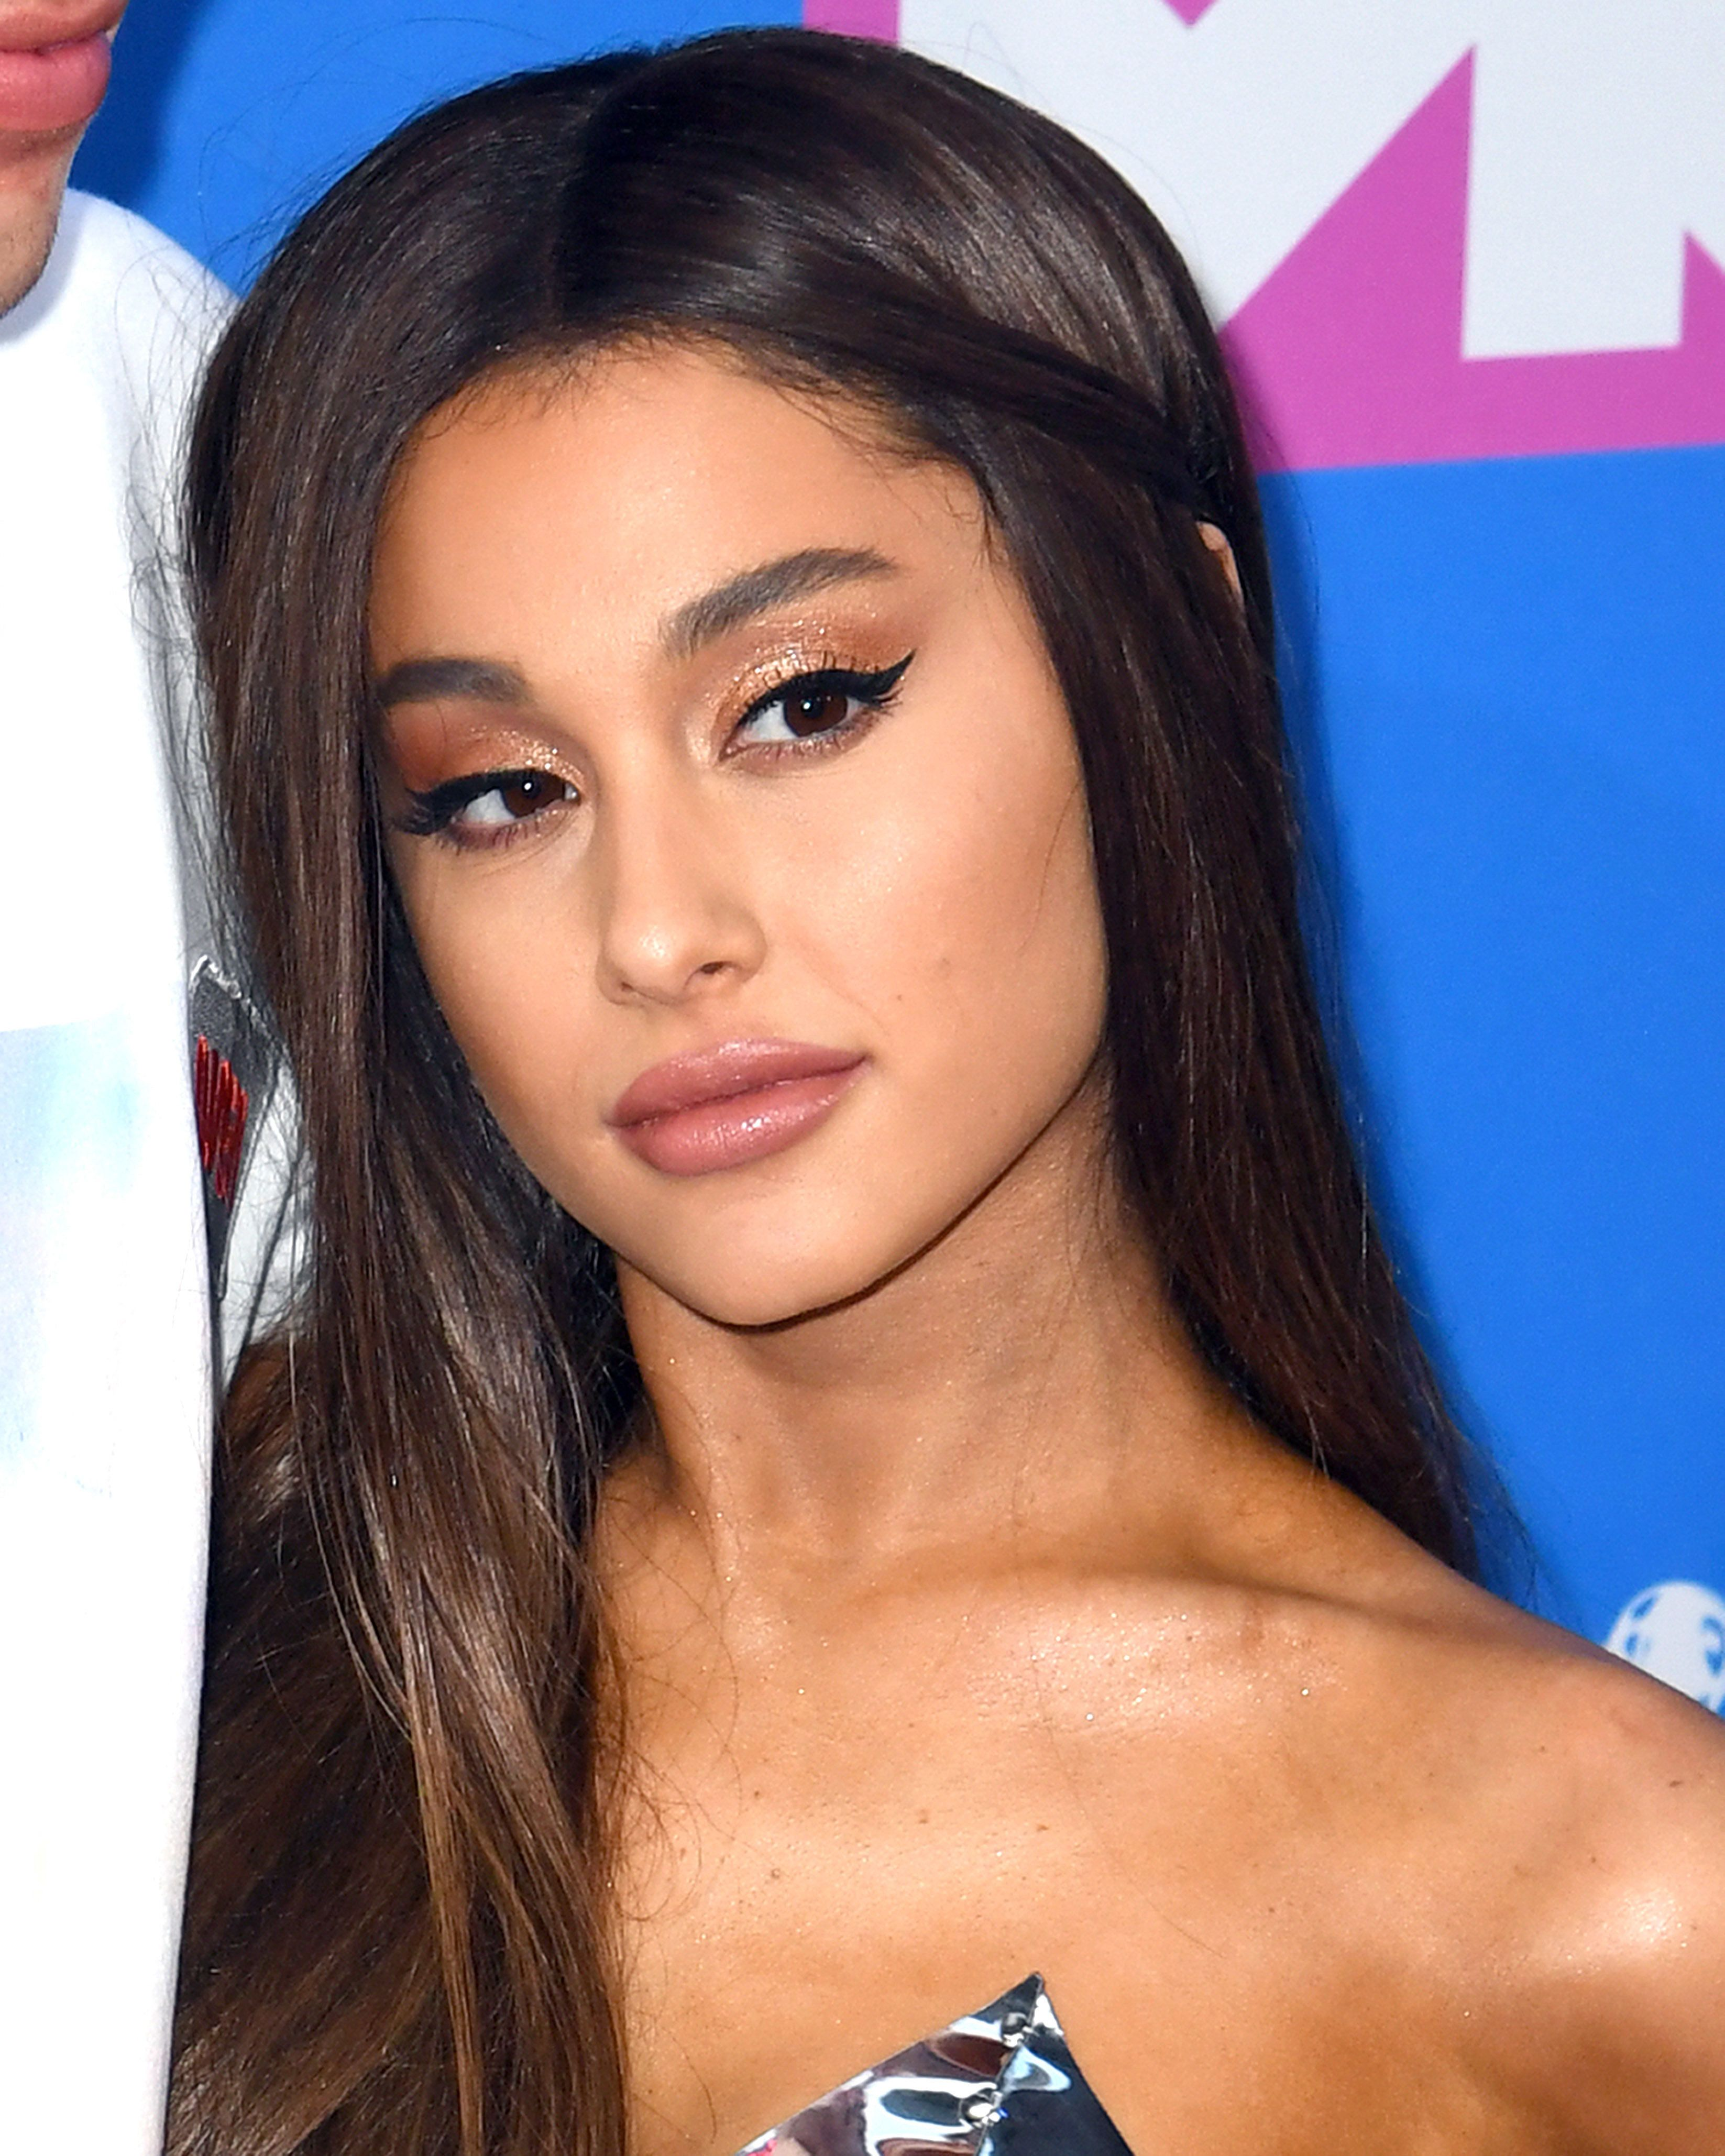 Ariana Grande Accuses Grammys Boss Of 'Lying' About Her After Pulled